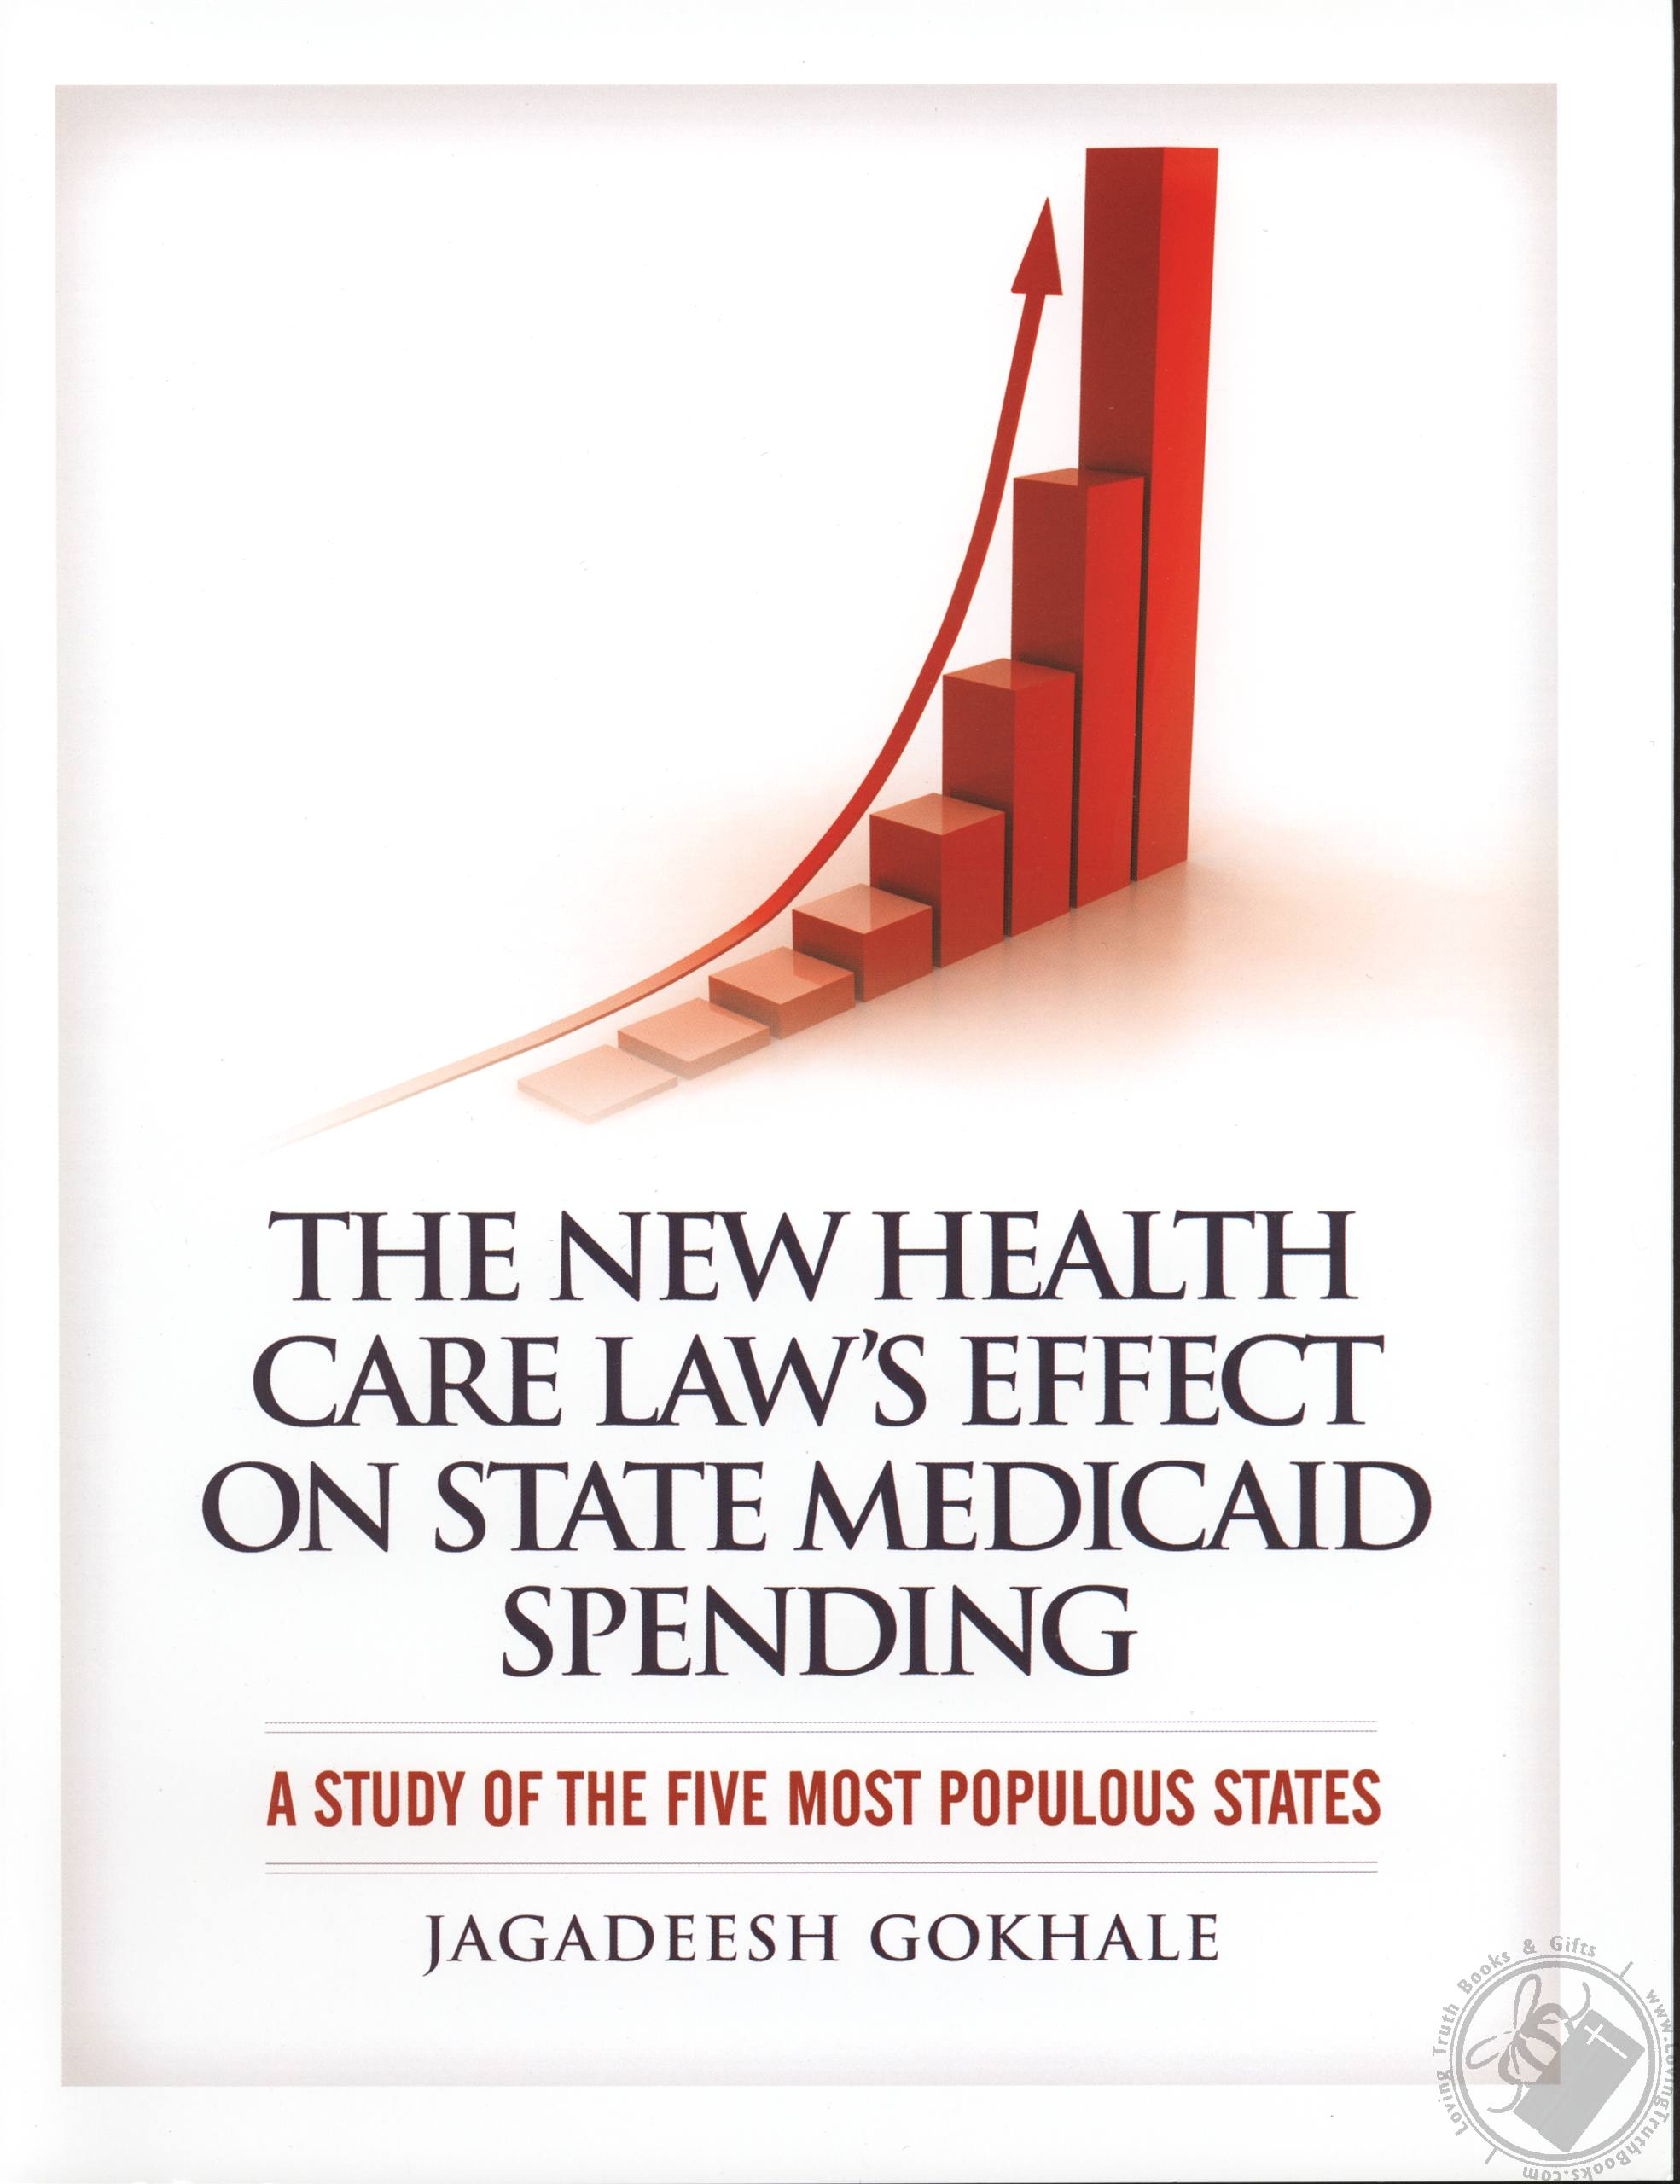 The New Health Care Laws Effect on State Medicaid Spending: A Study of the Five Most Populous States